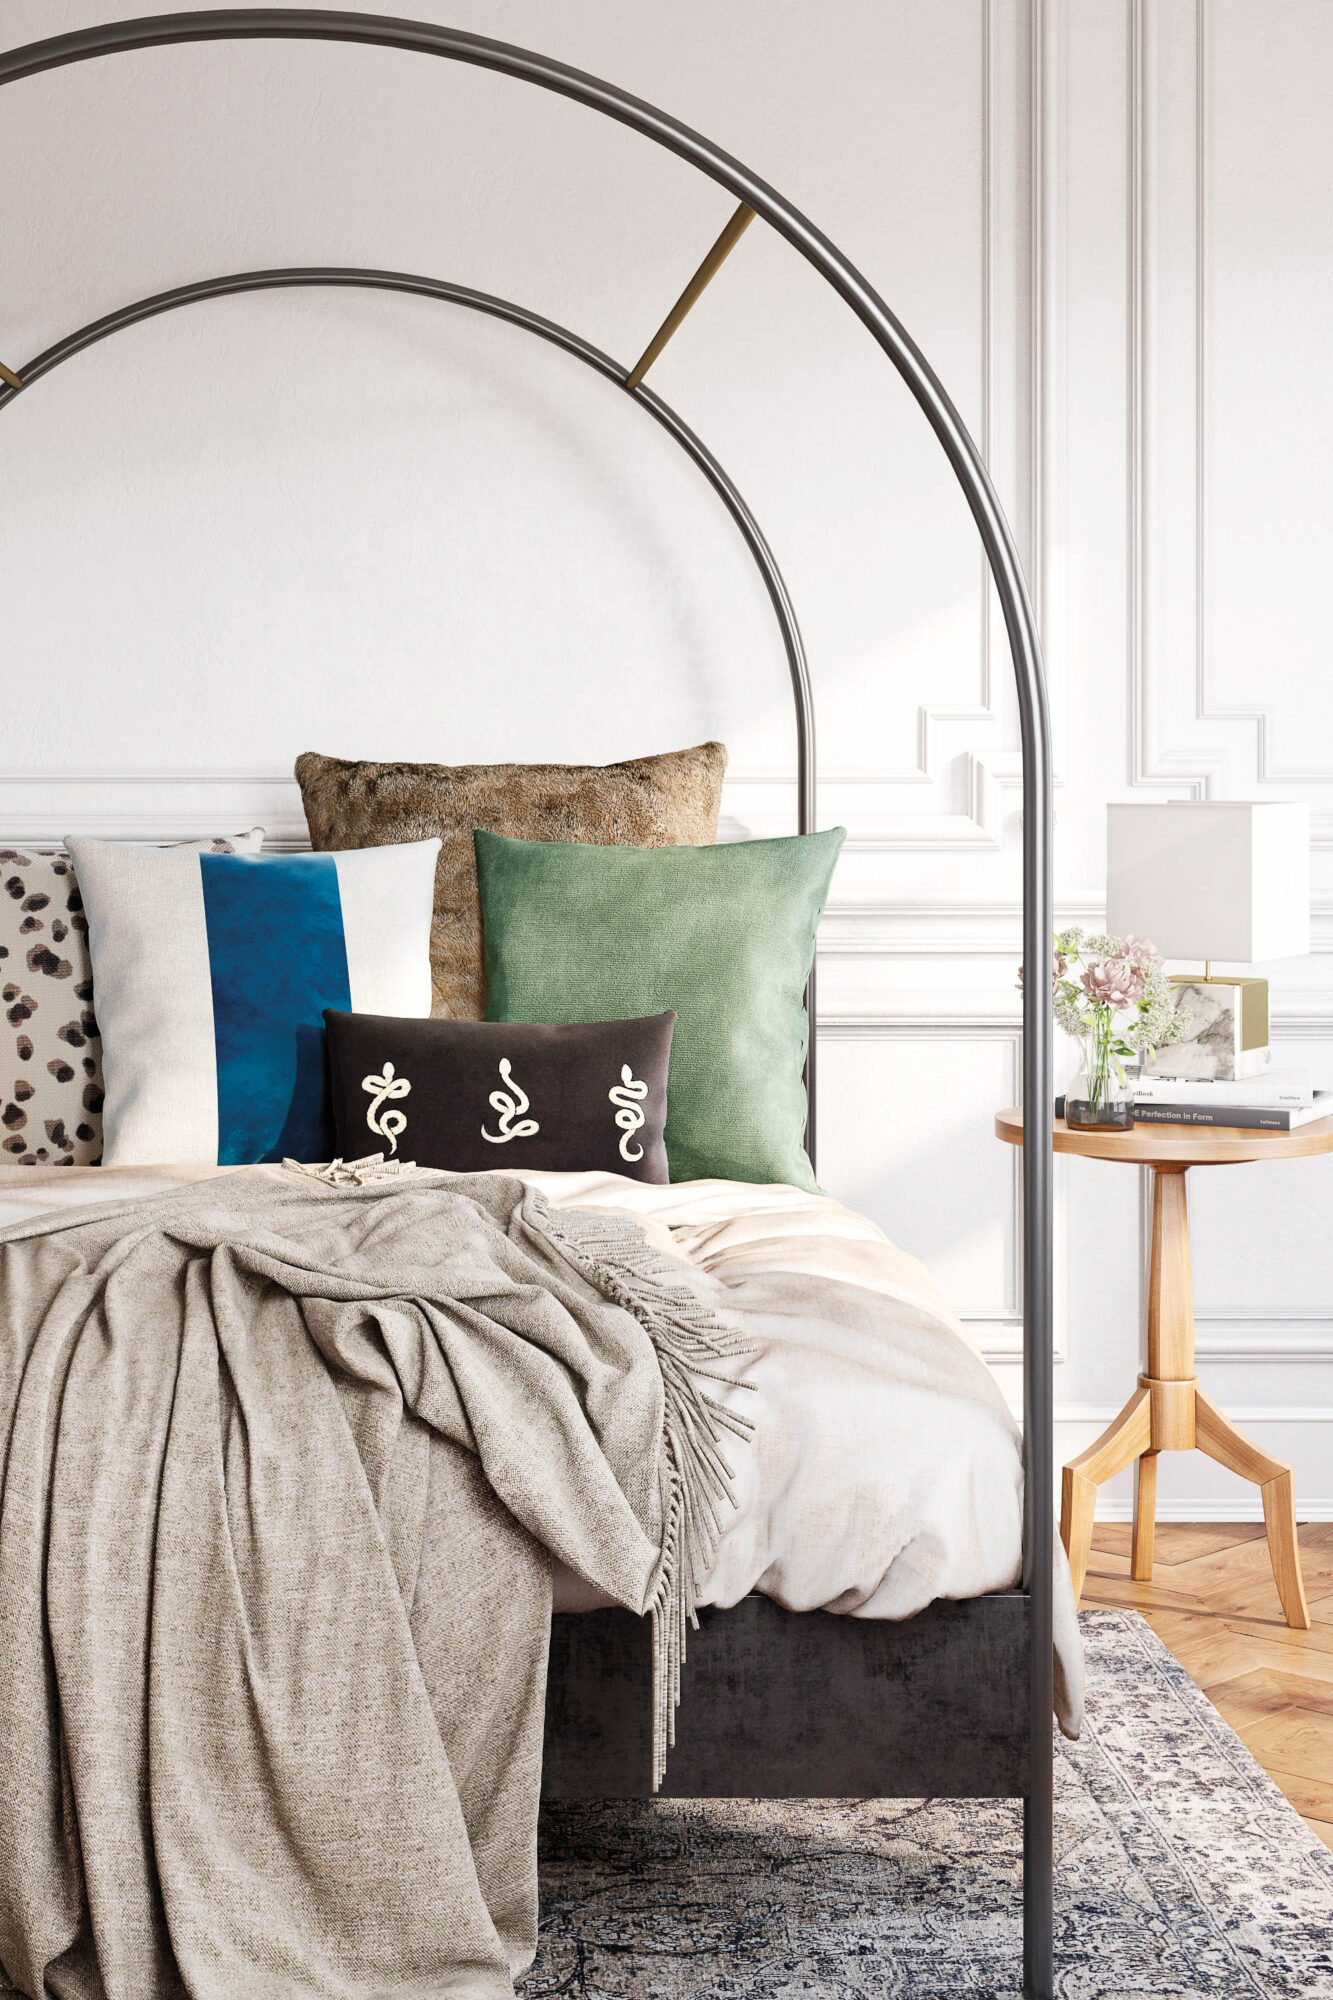 vignette of bed with cozy pillows